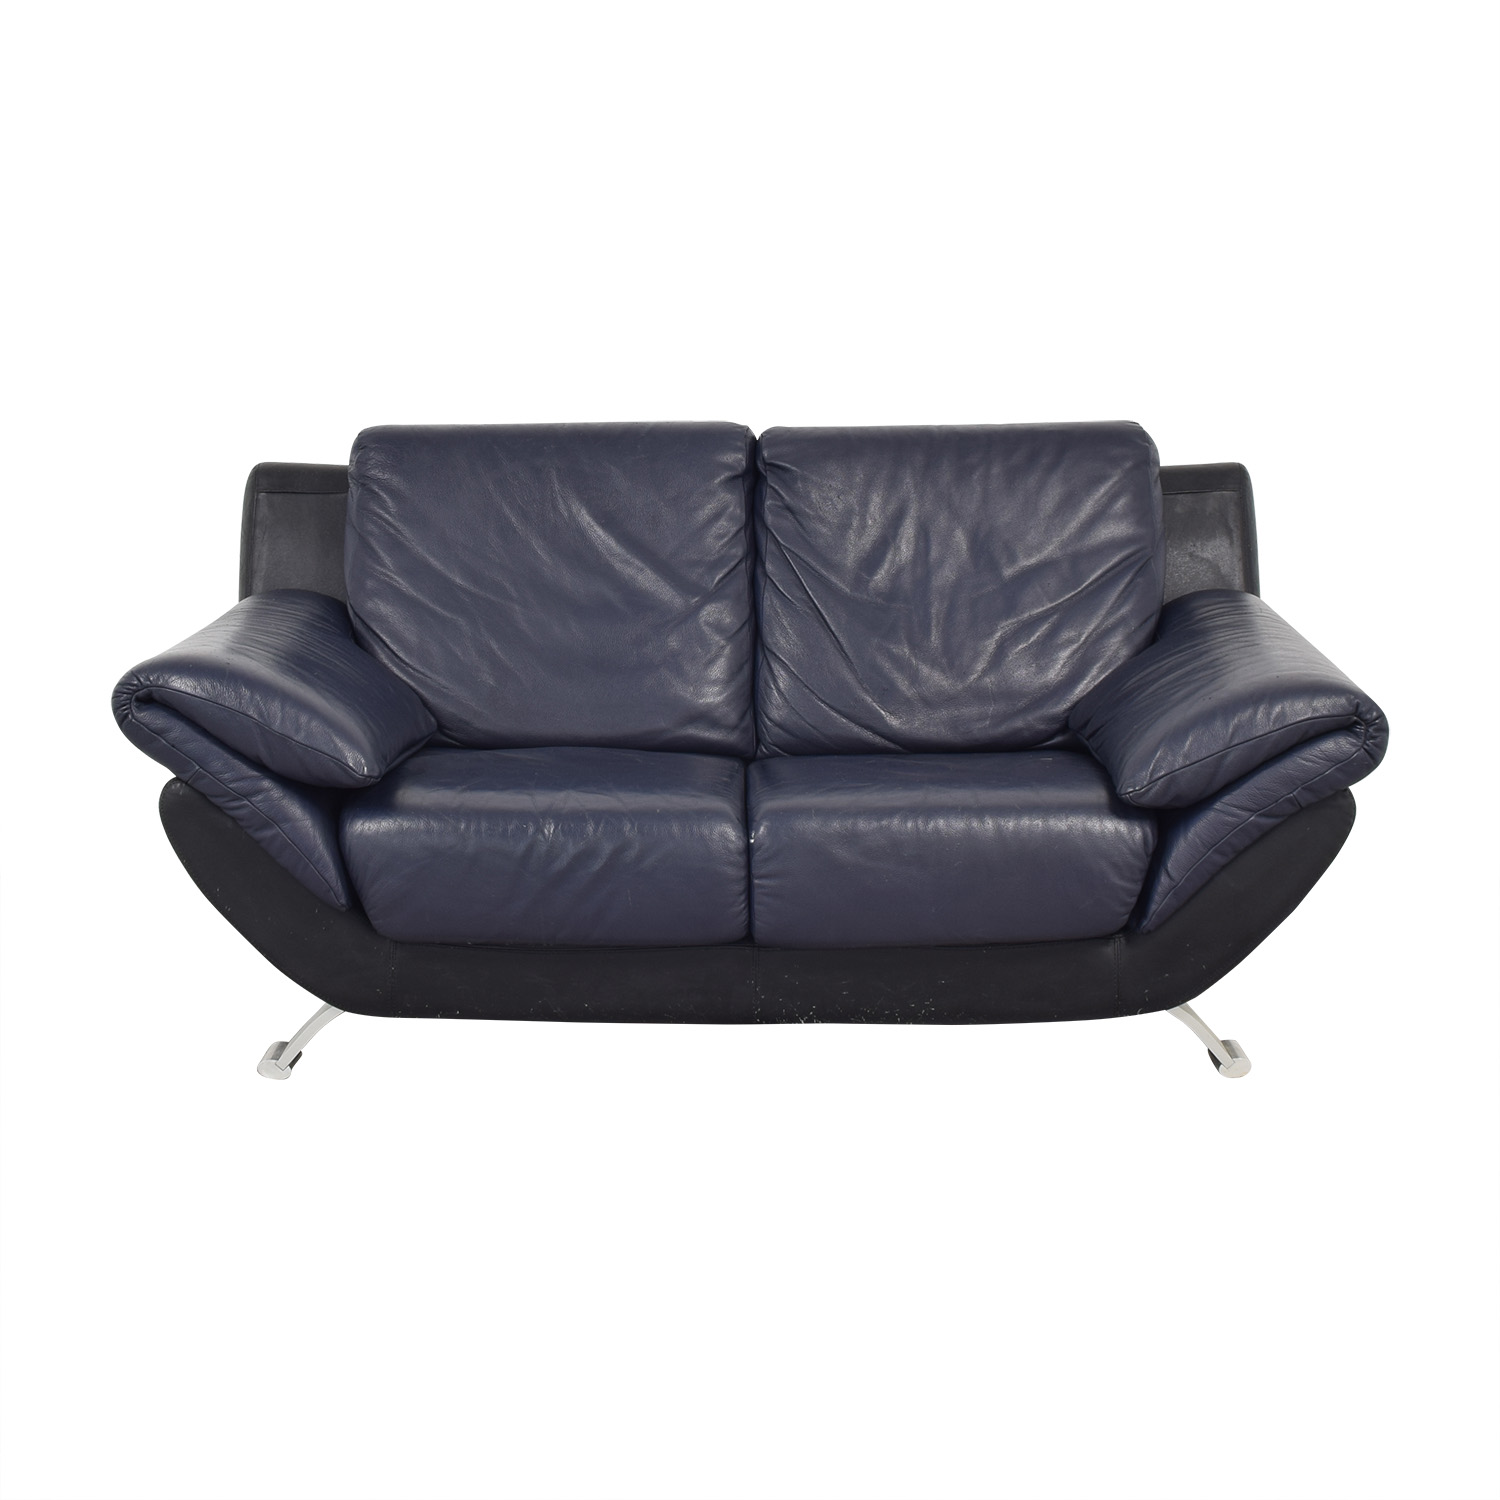 Two Seat Loveseat blue & black